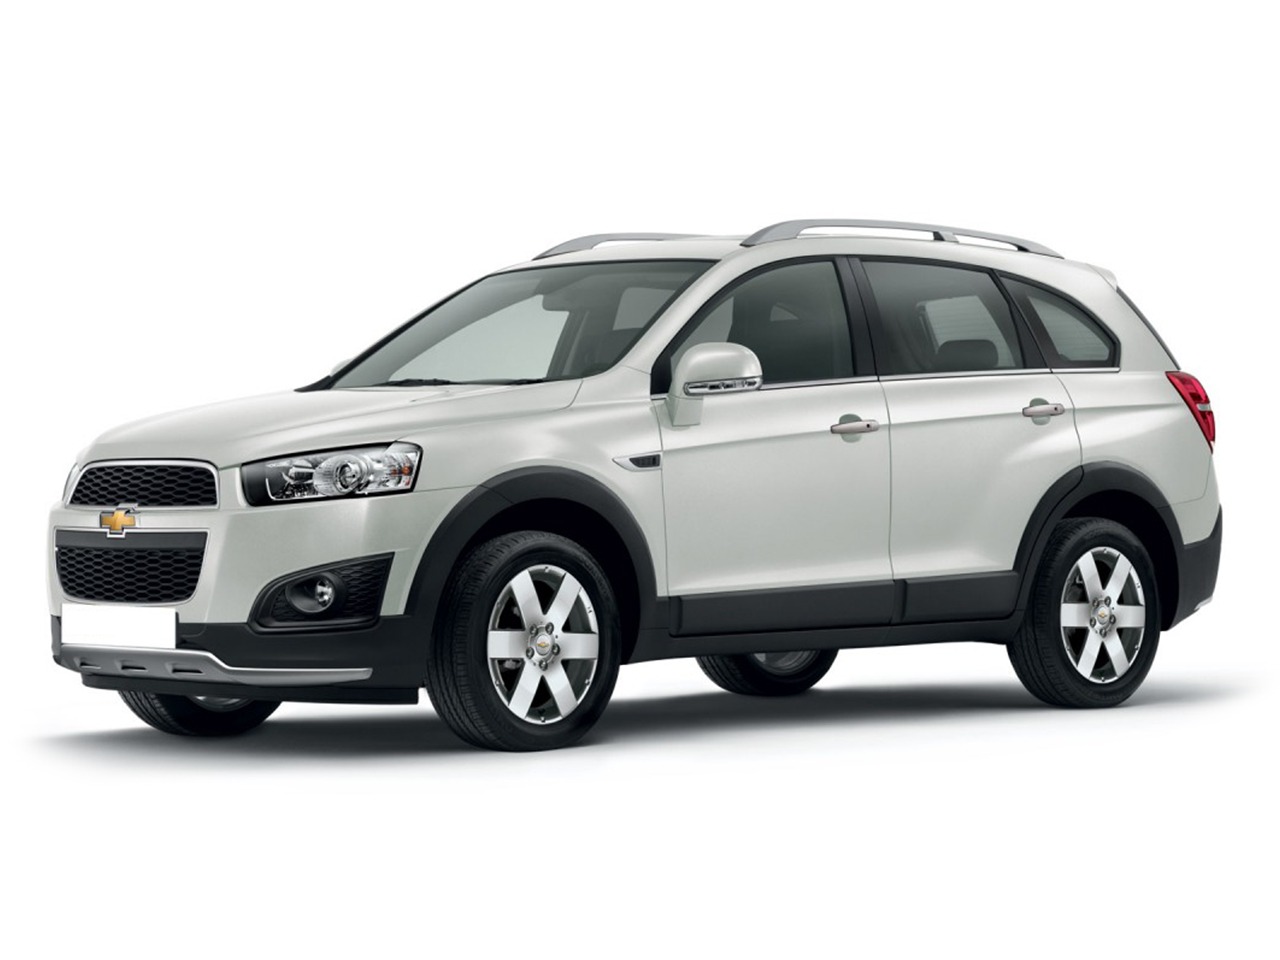 All Chevy chevy captiva horsepower : 2018 Chevrolet Captiva Prices in Kuwait, Gulf Specs & Reviews for ...